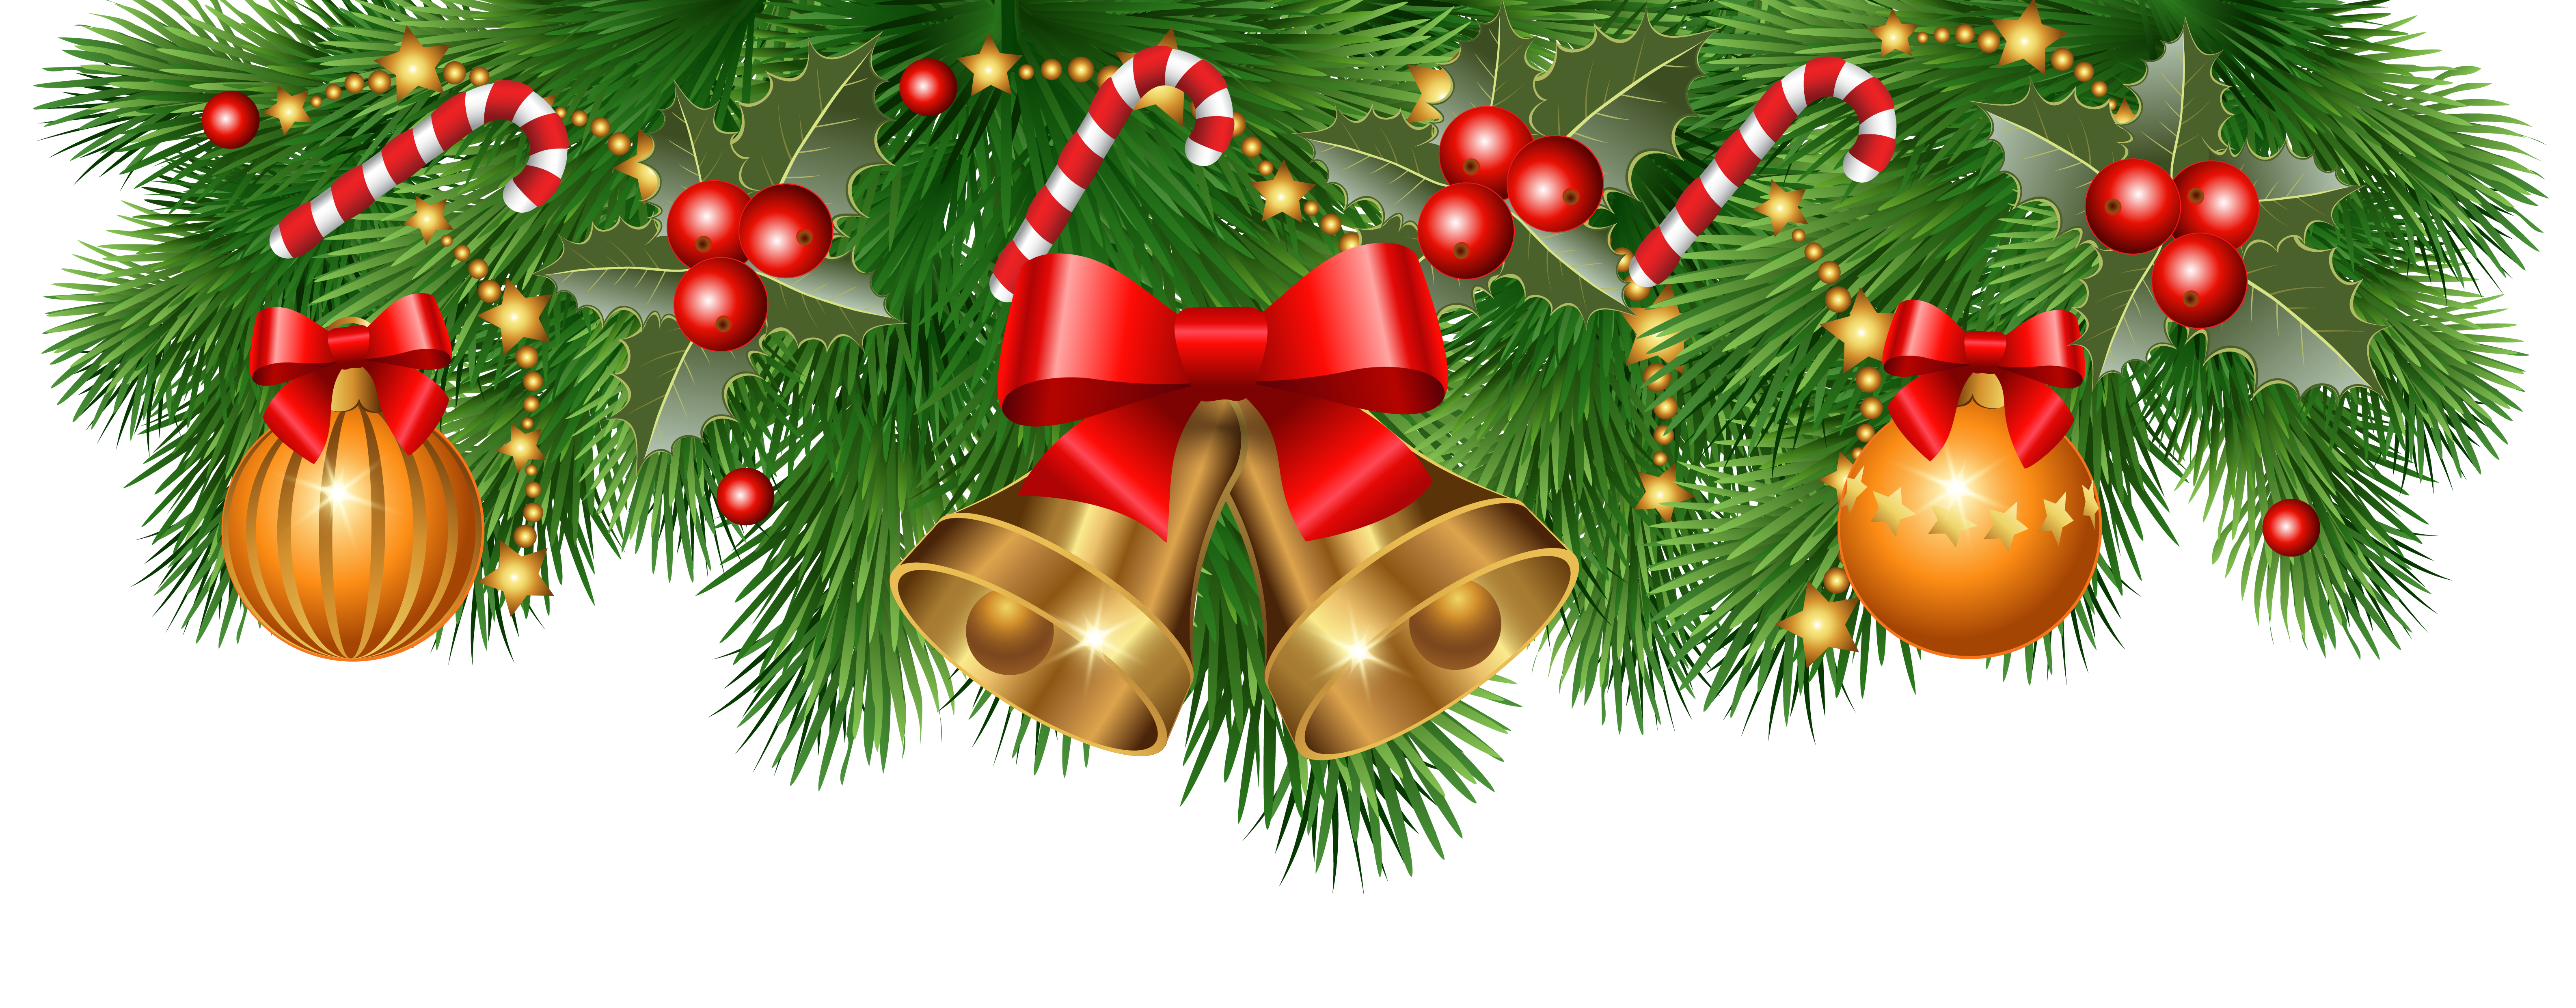 Clipart christmas boarder. Border decoration png image